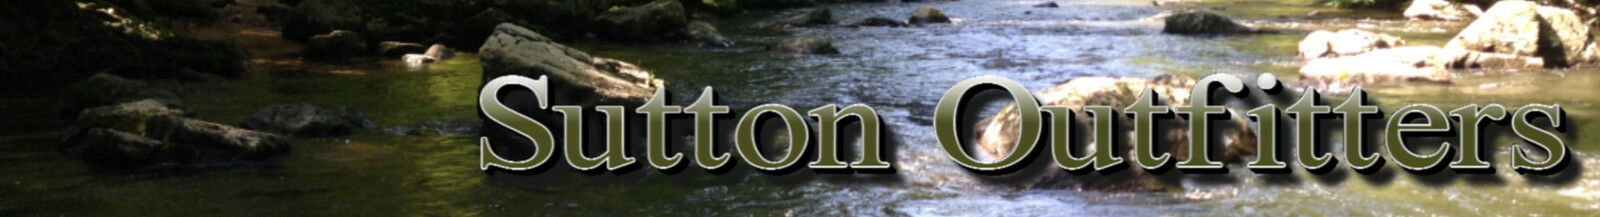 Sutton Outfitters